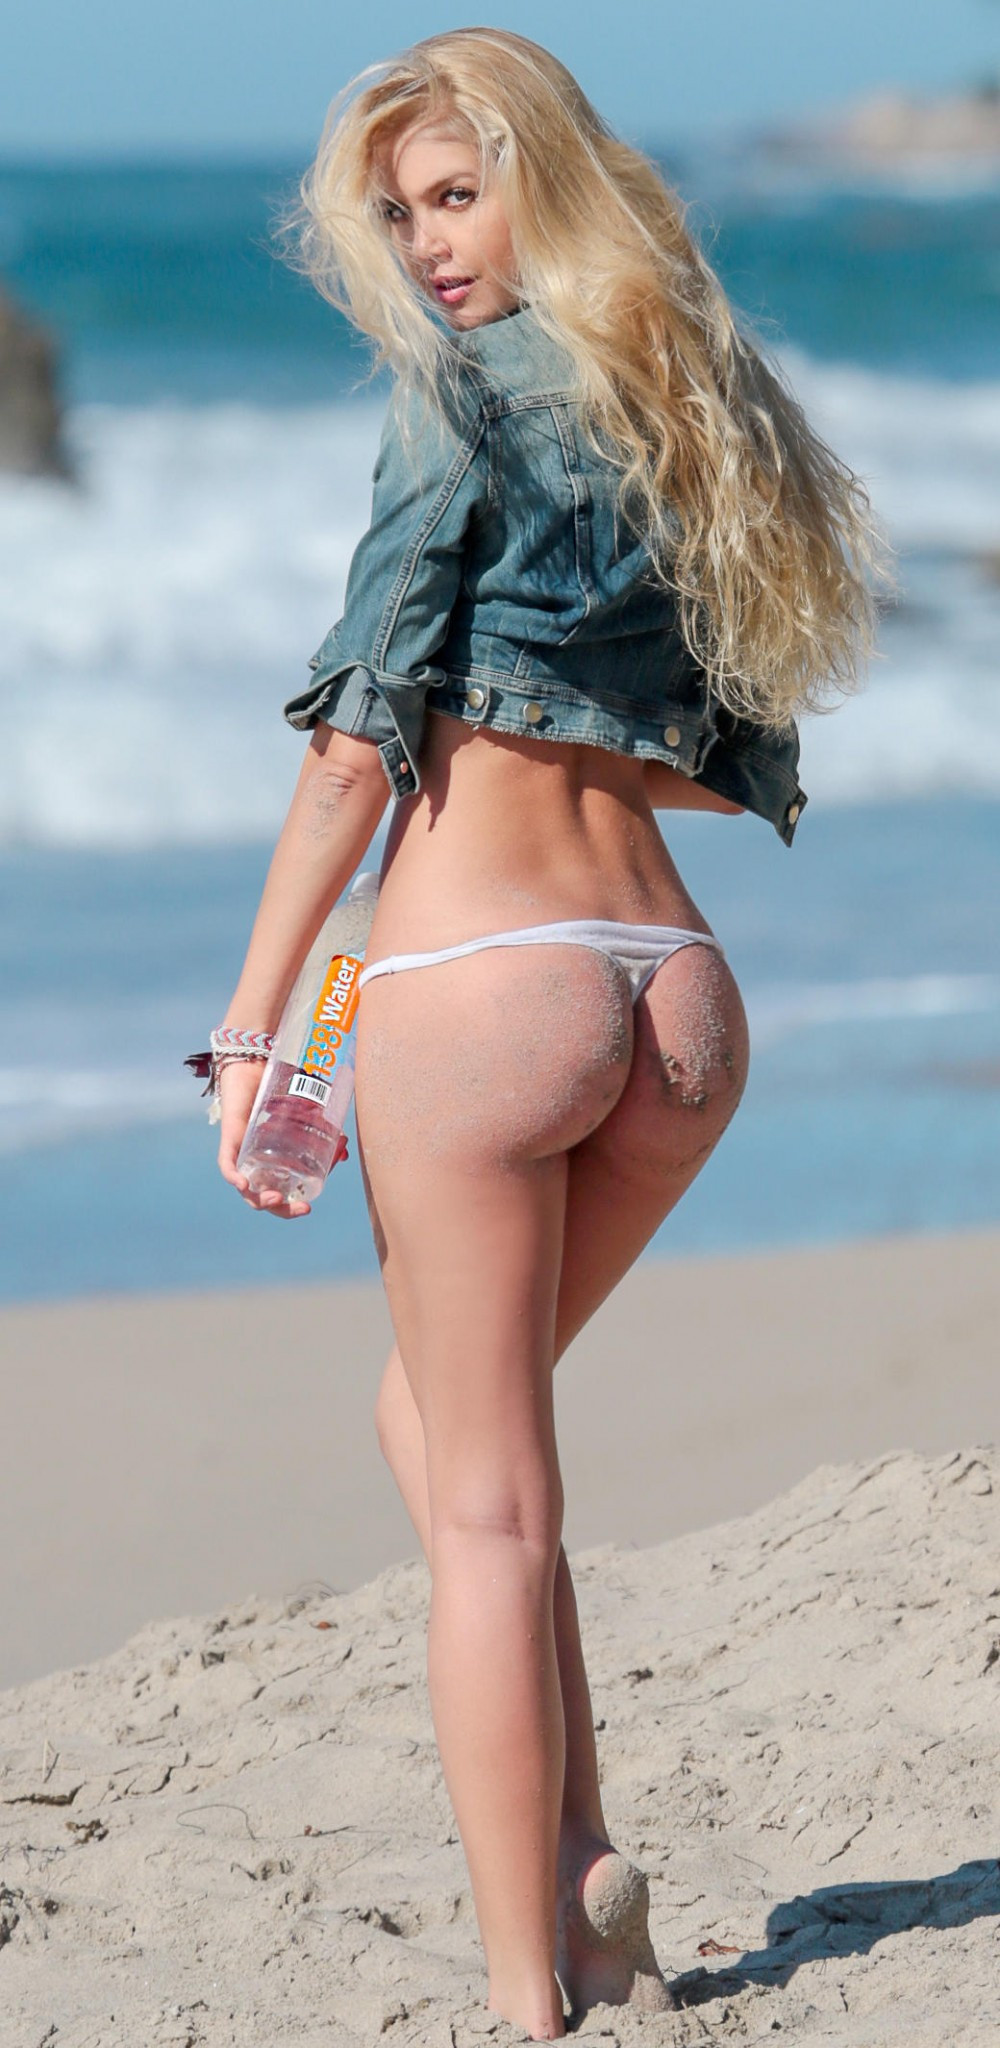 kat-torres-138-water-photo-shoot-in-malibu-21